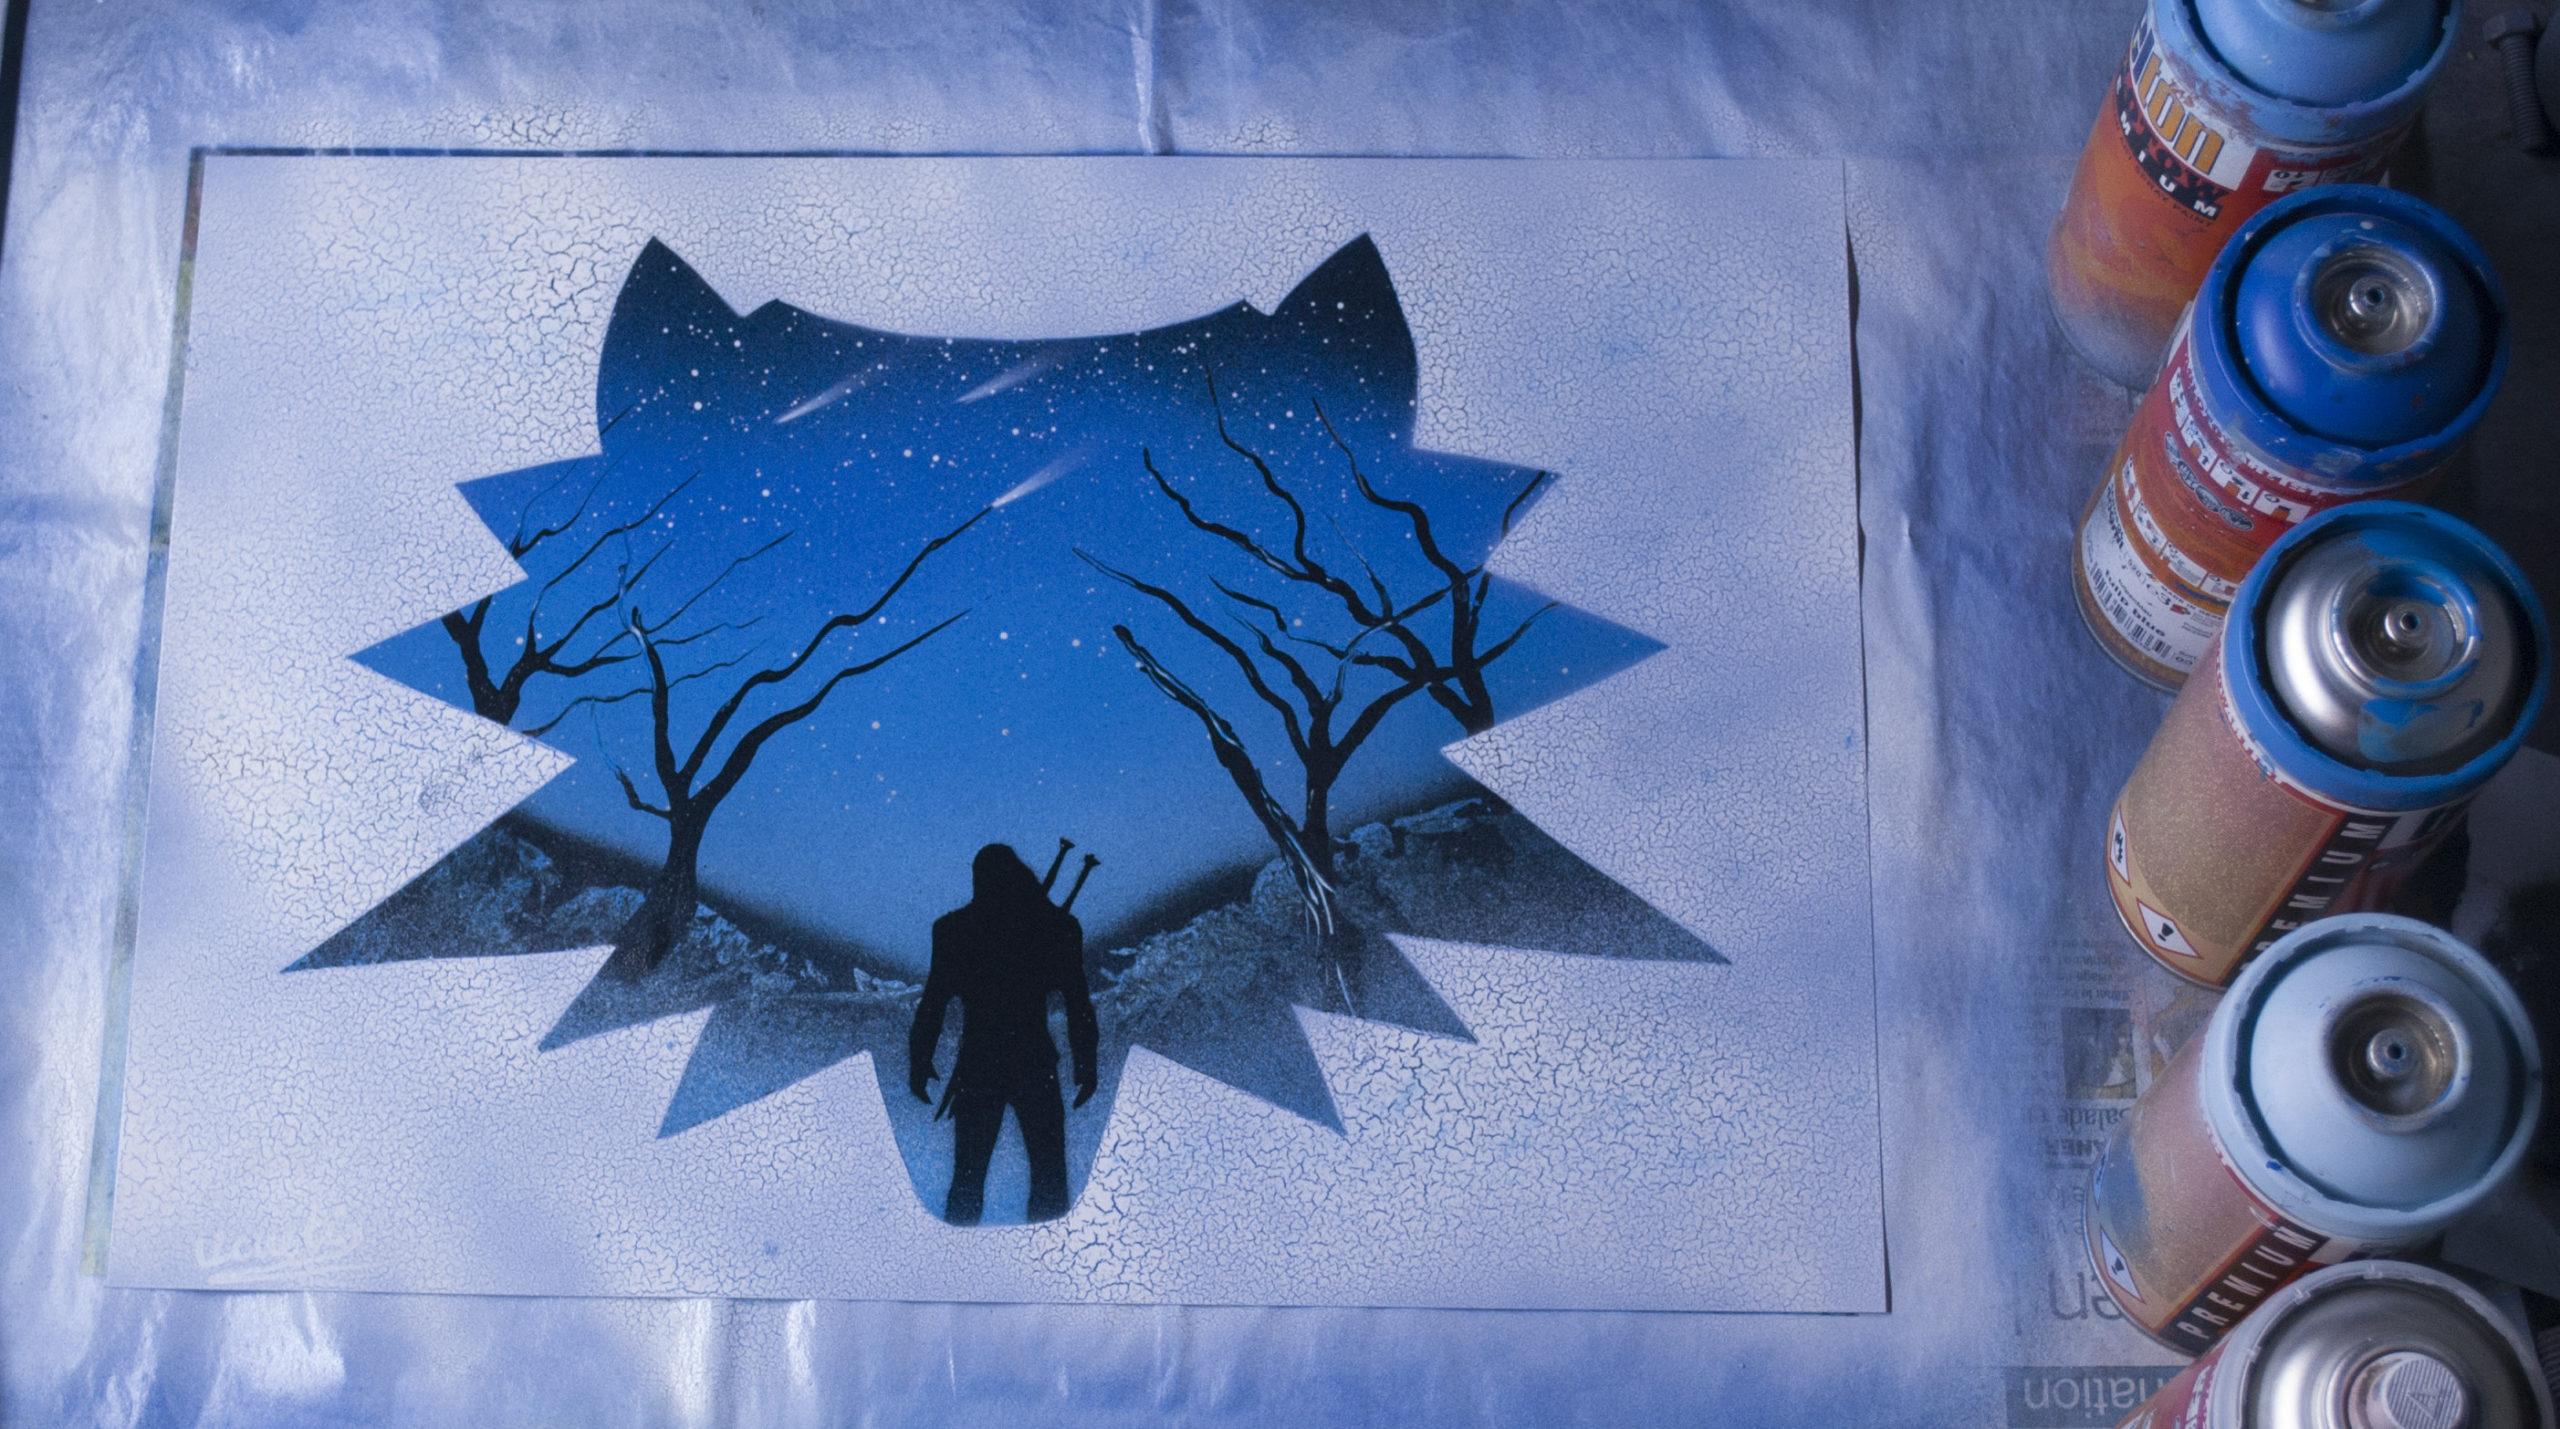 The witcher - Spray paint art by Ucuetis